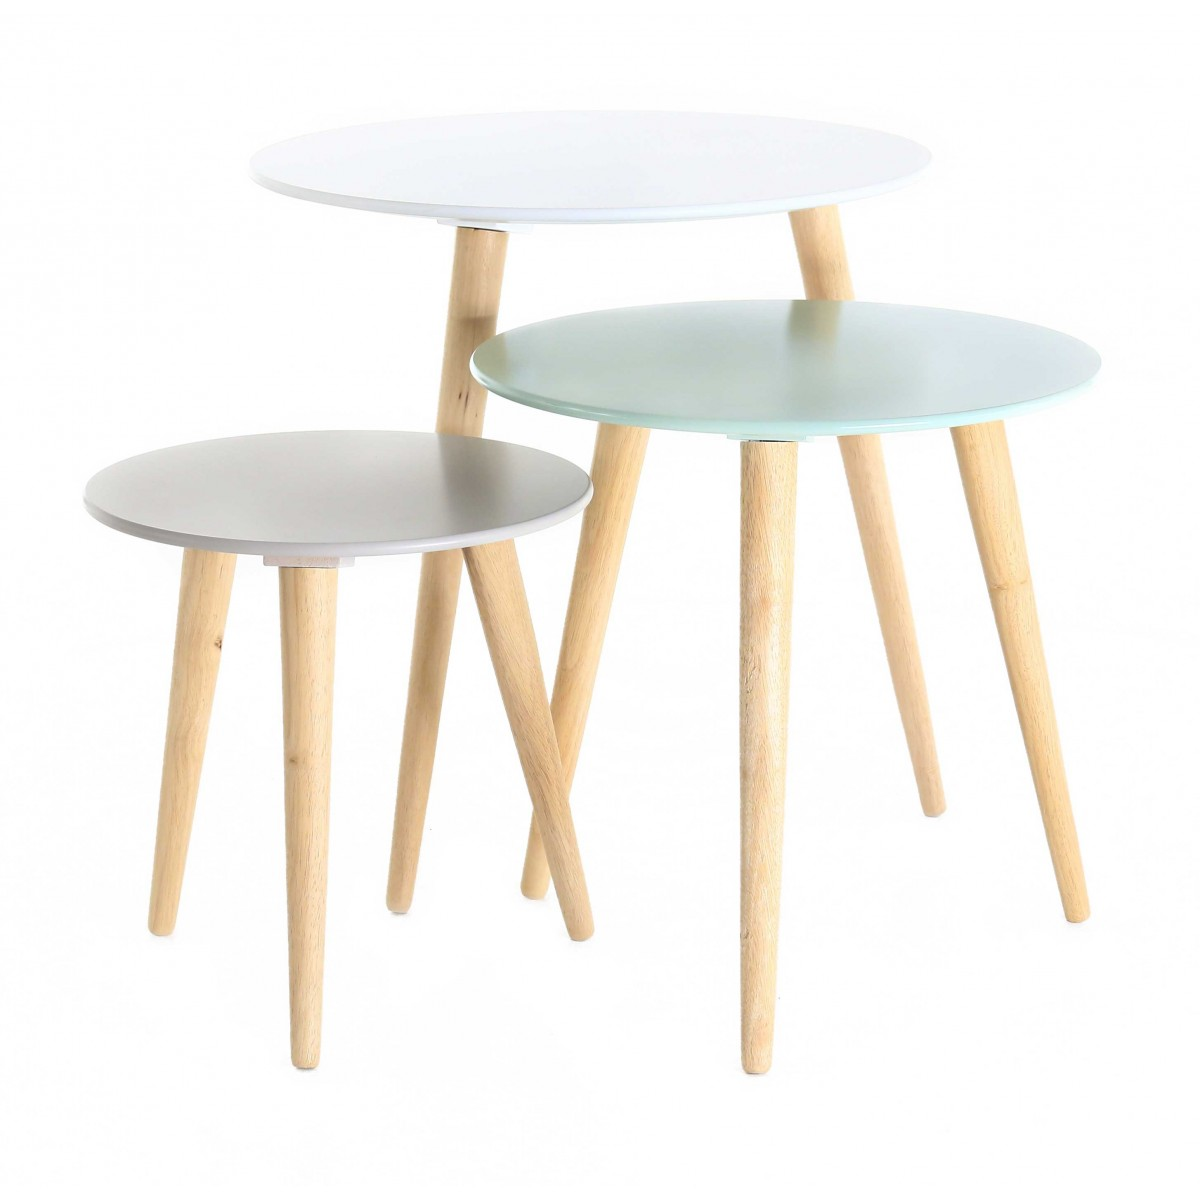 Set de 3 tables gigognes rondes scandinaves mooviin for Table scandinave grise